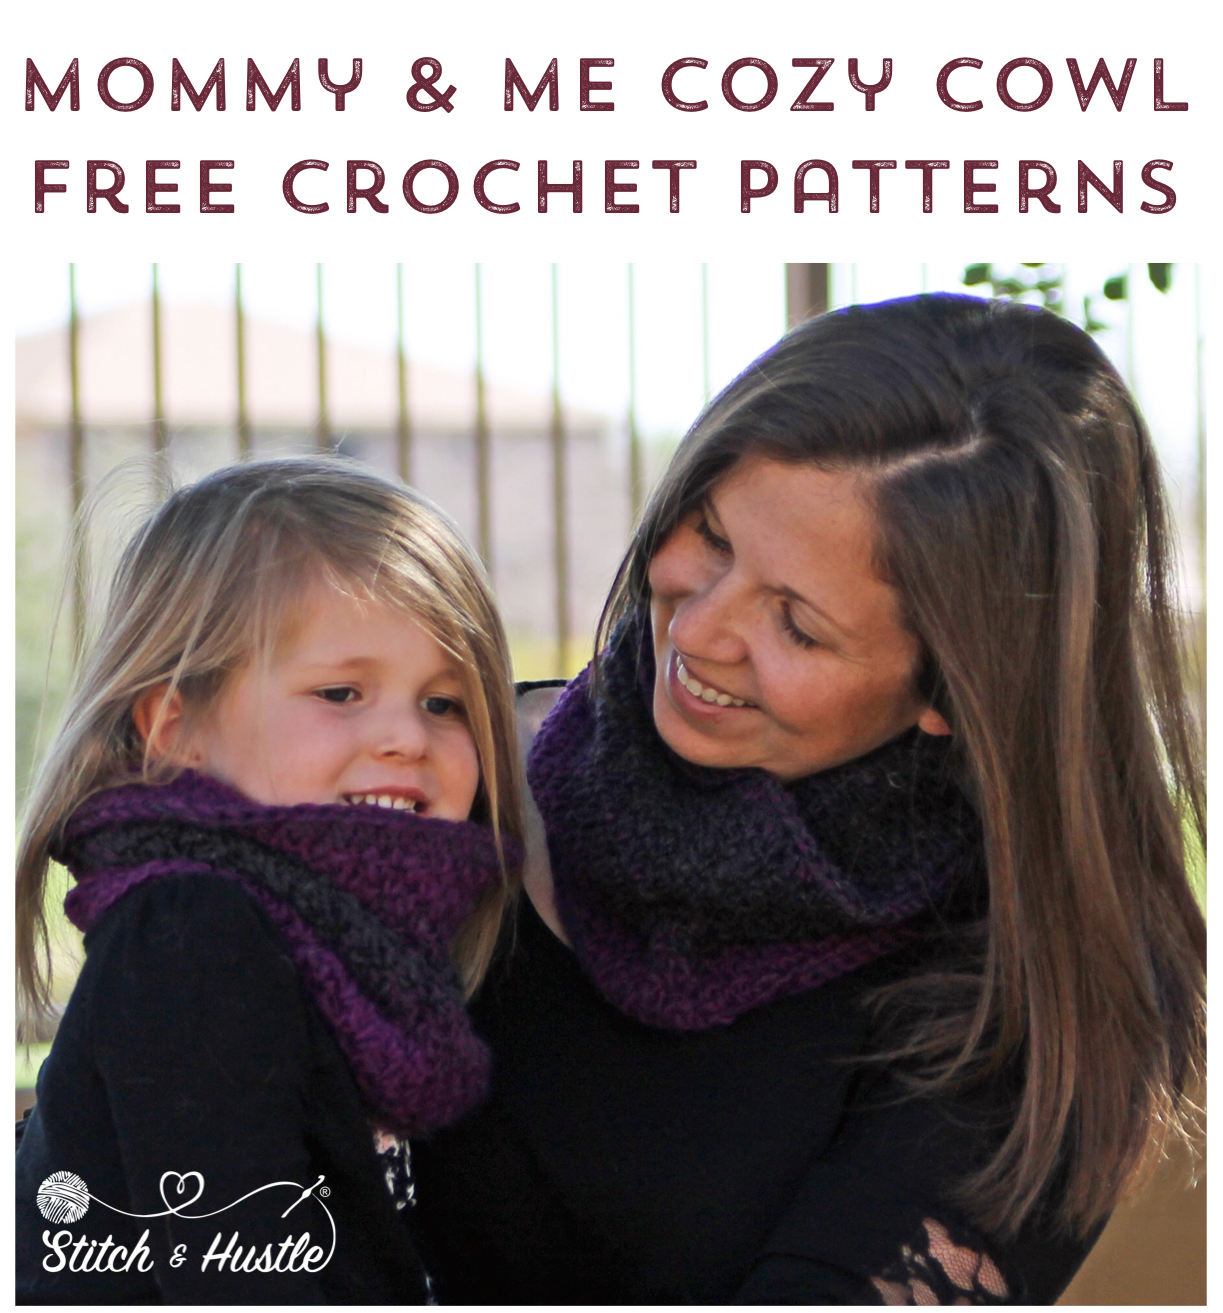 mommy-and-me-free-cowl-crochet-pattern-5.jpg